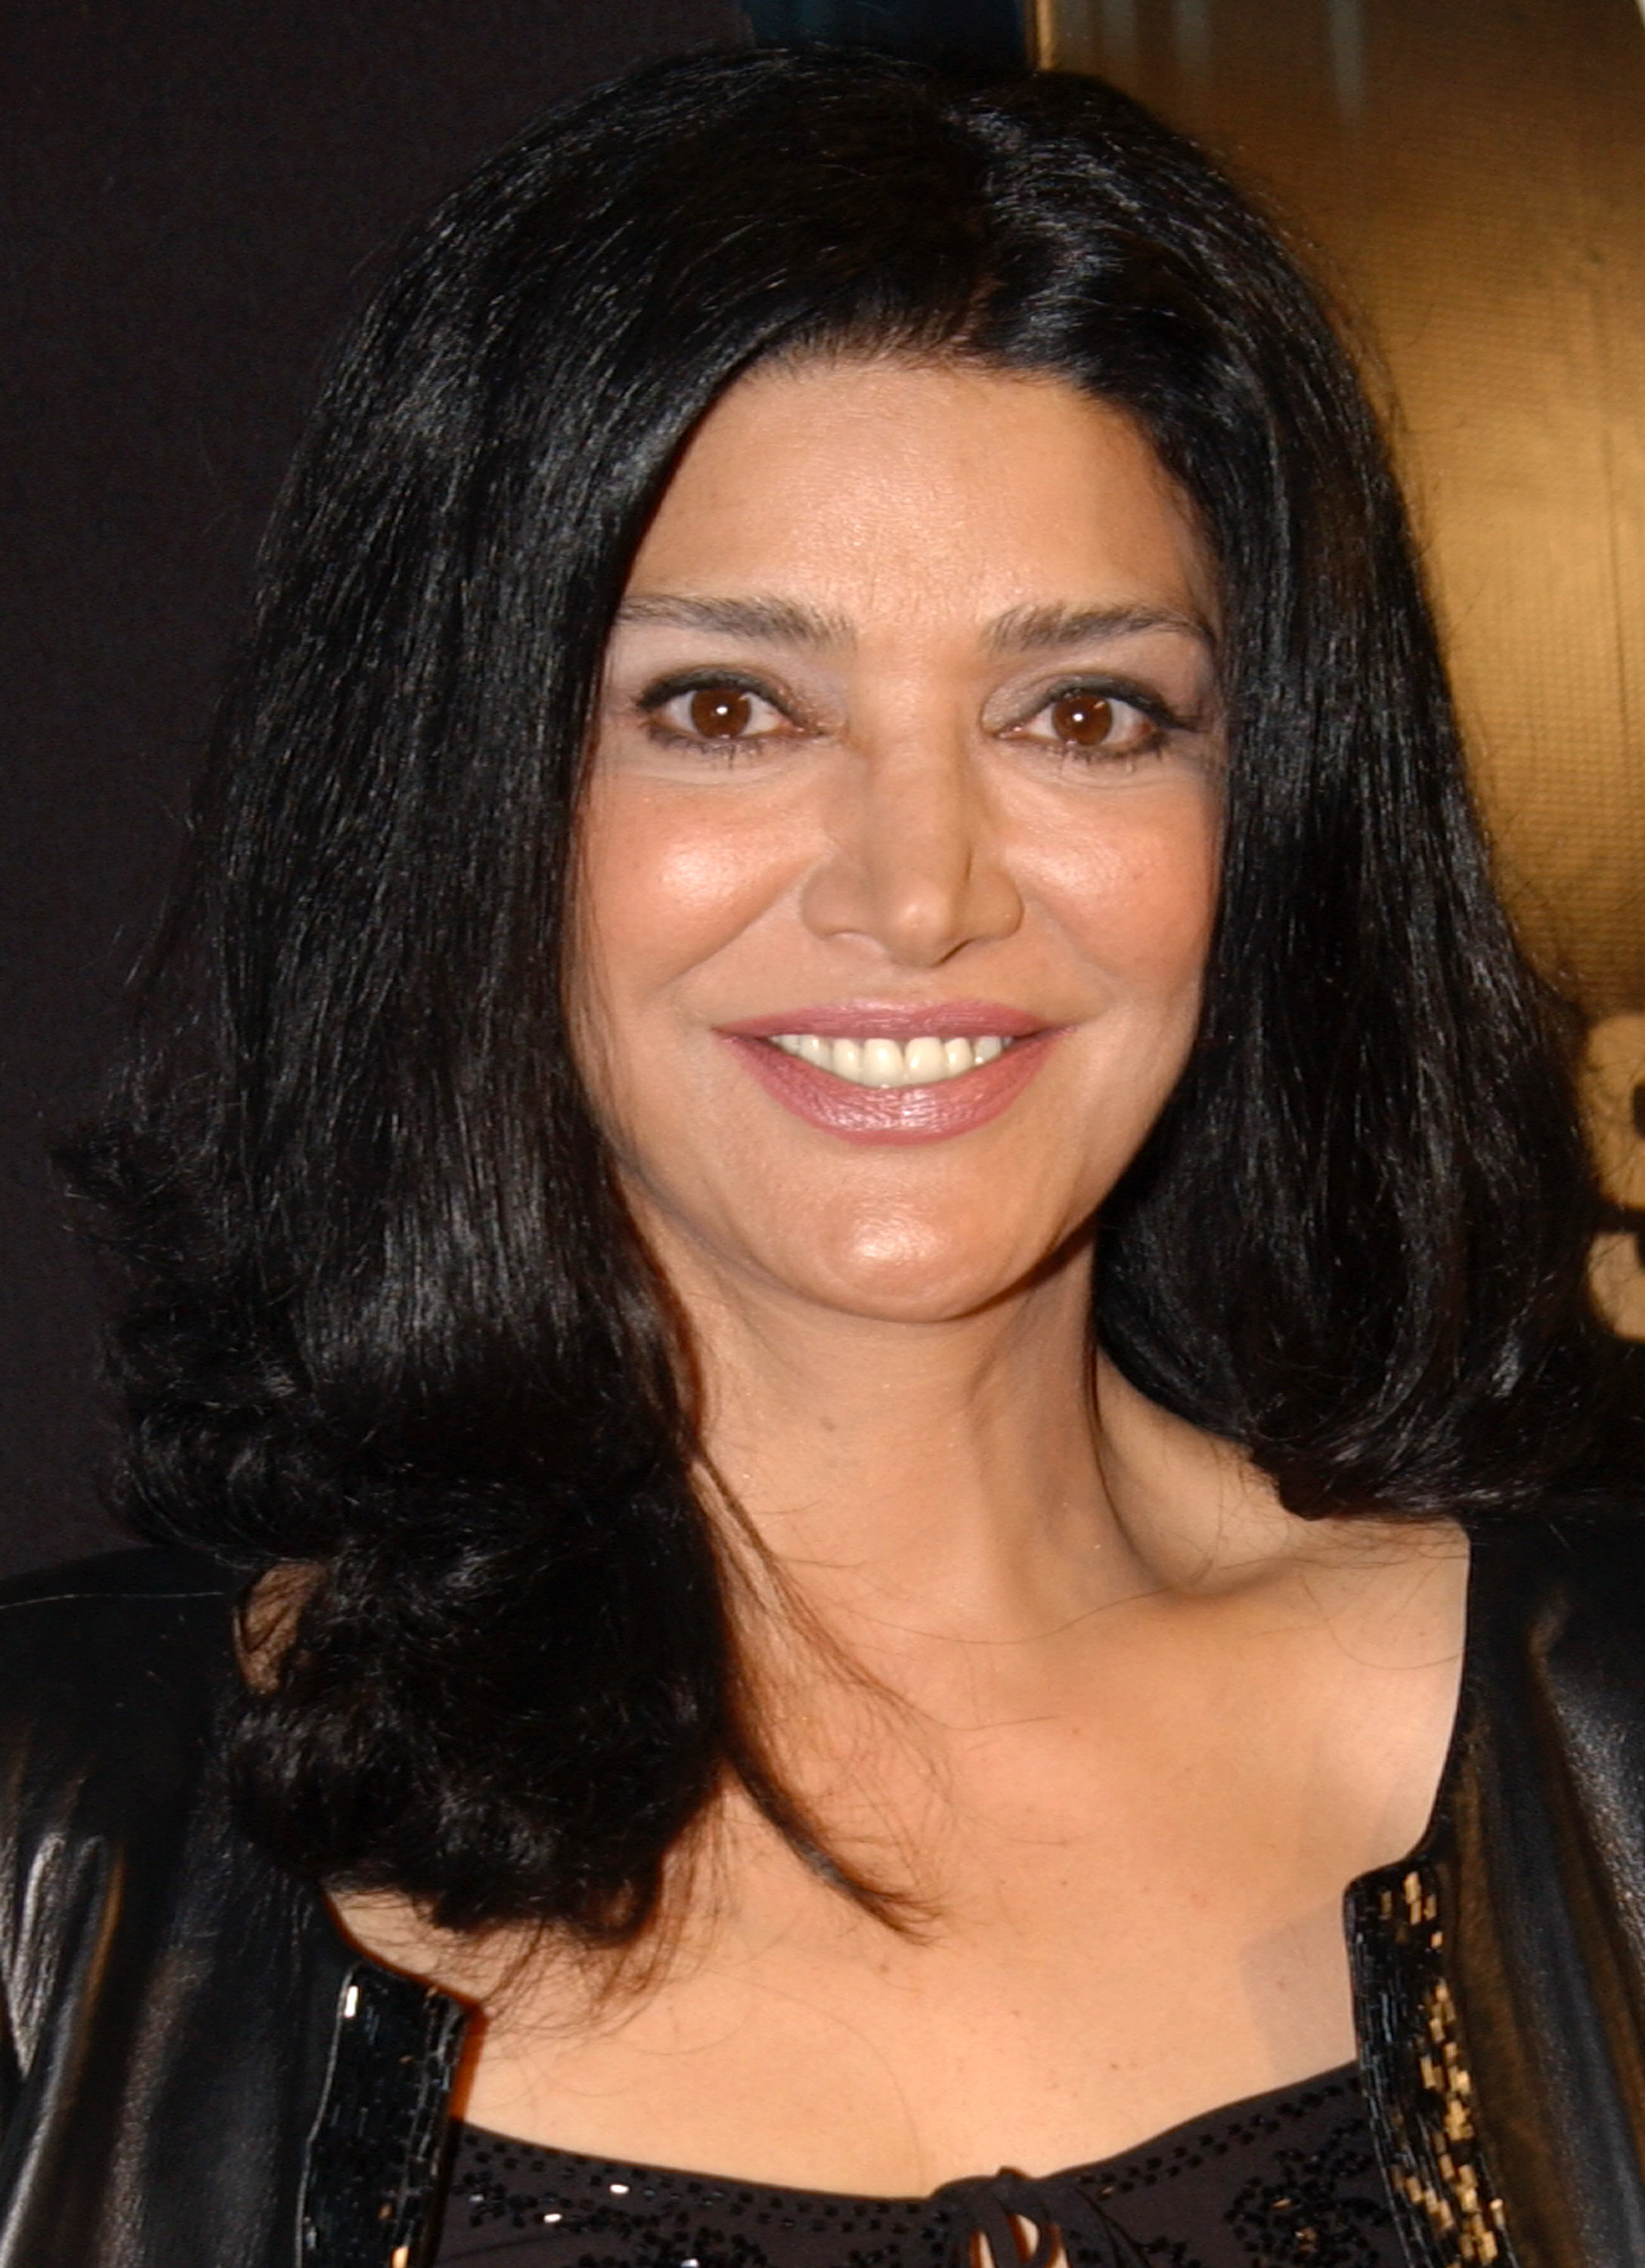 Download this Shohreh Aghdashloo Season Dvd Release Party And Premiere picture